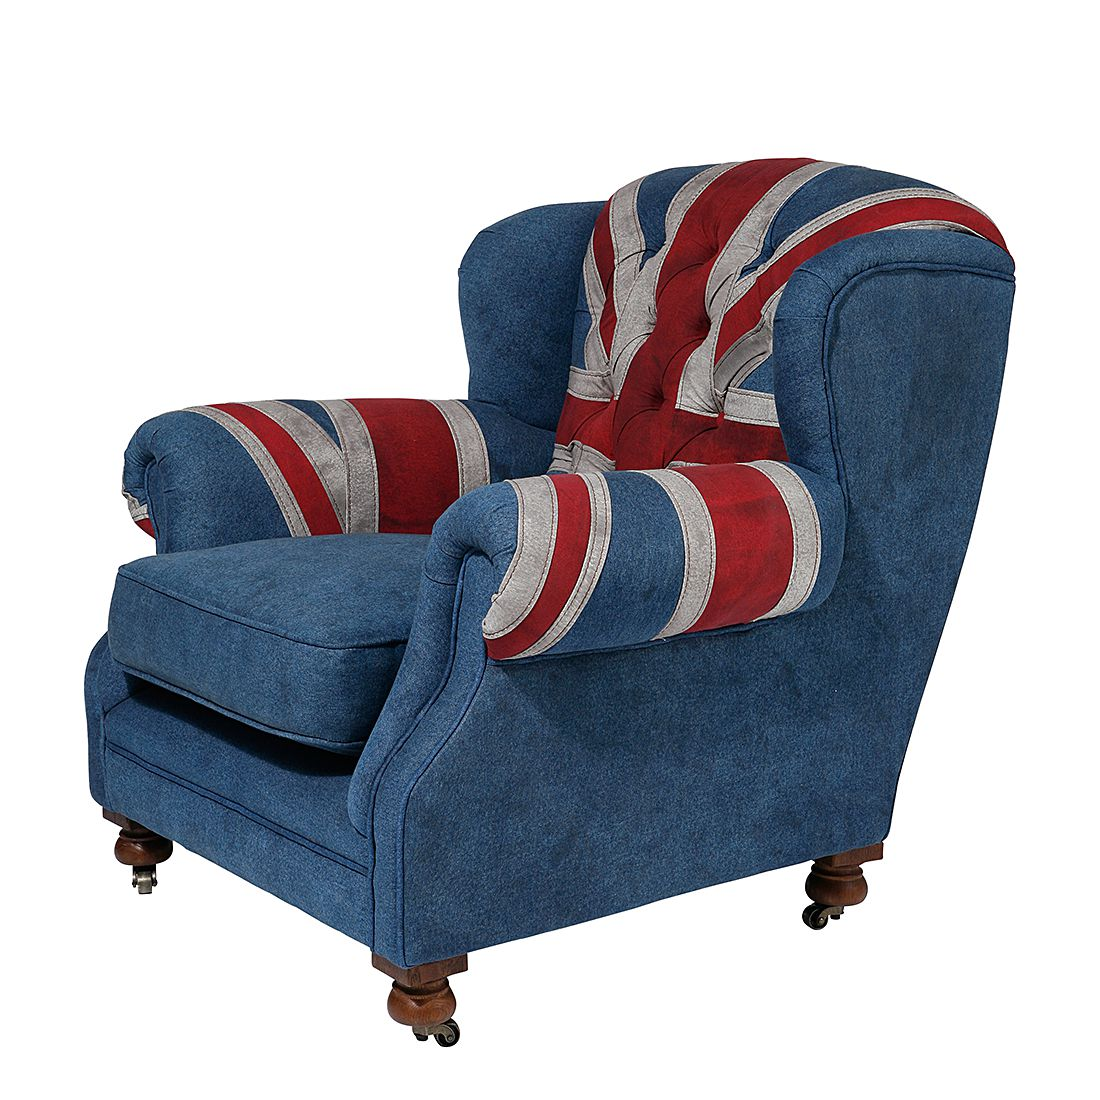 Oorfauteuil Grandfather Union Jack - spijkerstof, Kare Design